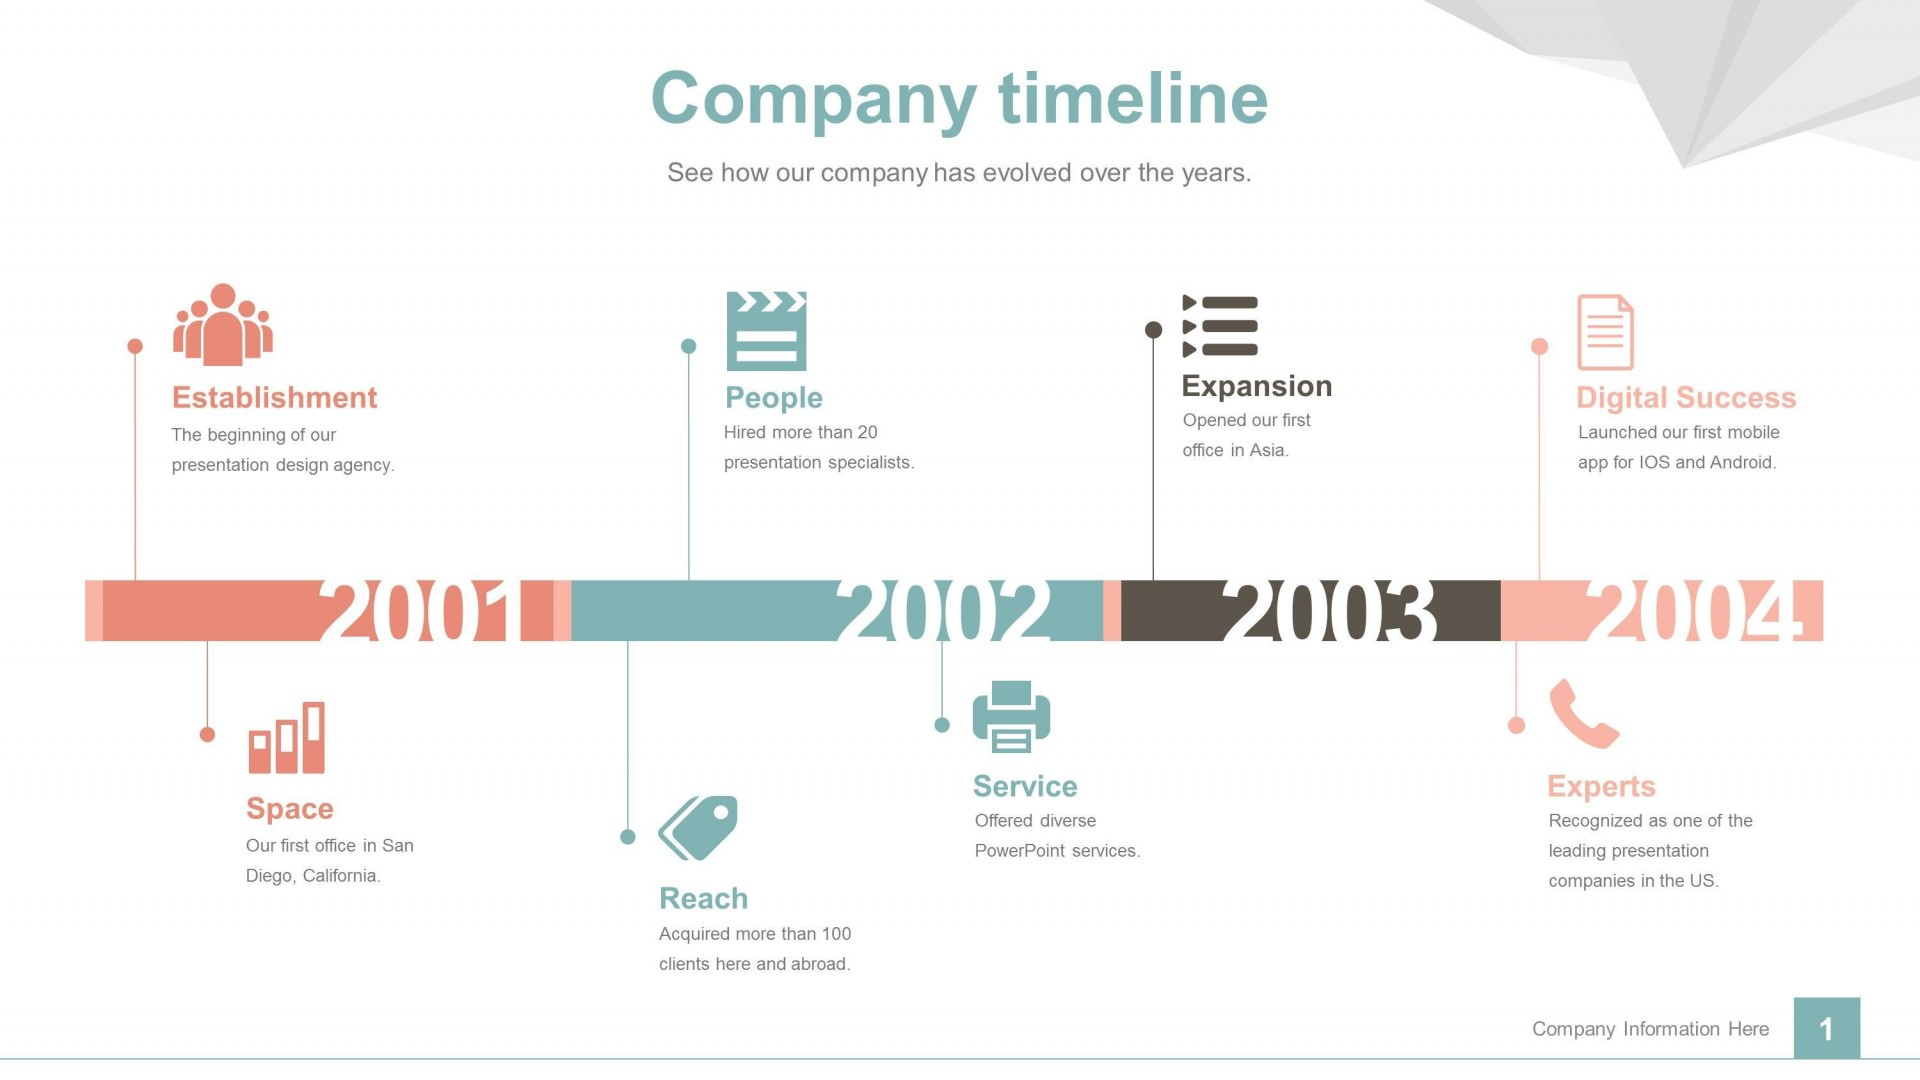 003 Fascinating Powerpoint Timeline Template Free Download High Def  Project History1920